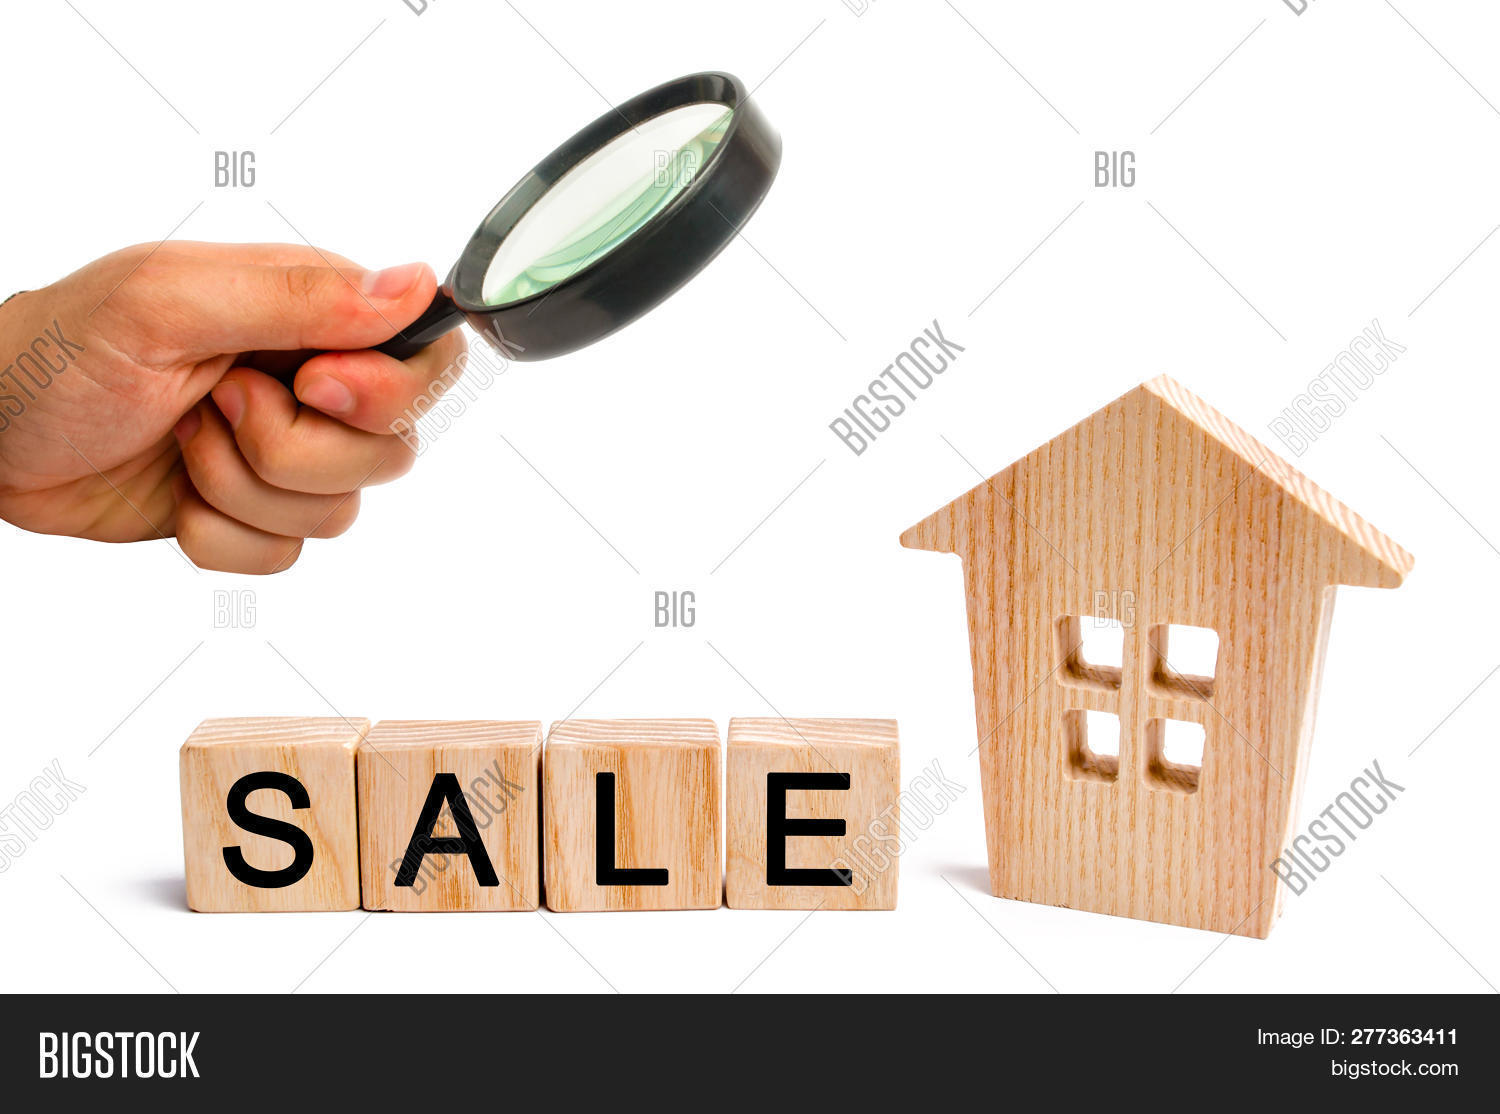 wooden house with the inscription sale on white isolated background. sale of property, home. affordable housing. sale of apartments. real estate agent services. realtor